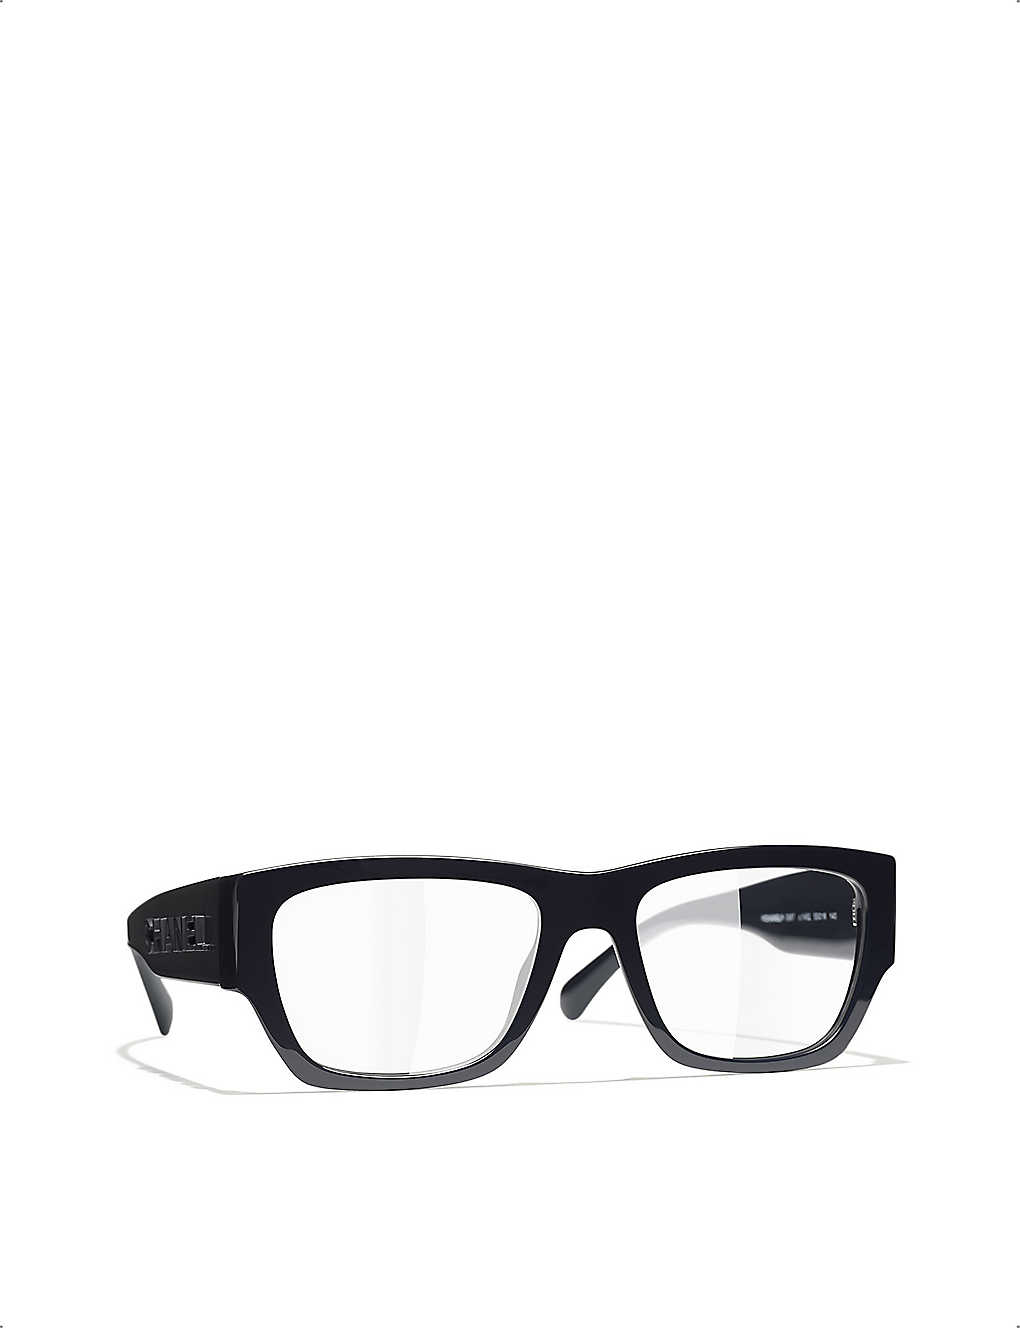 CHANEL: CH3387 branded-arms rectangle-frame glasses